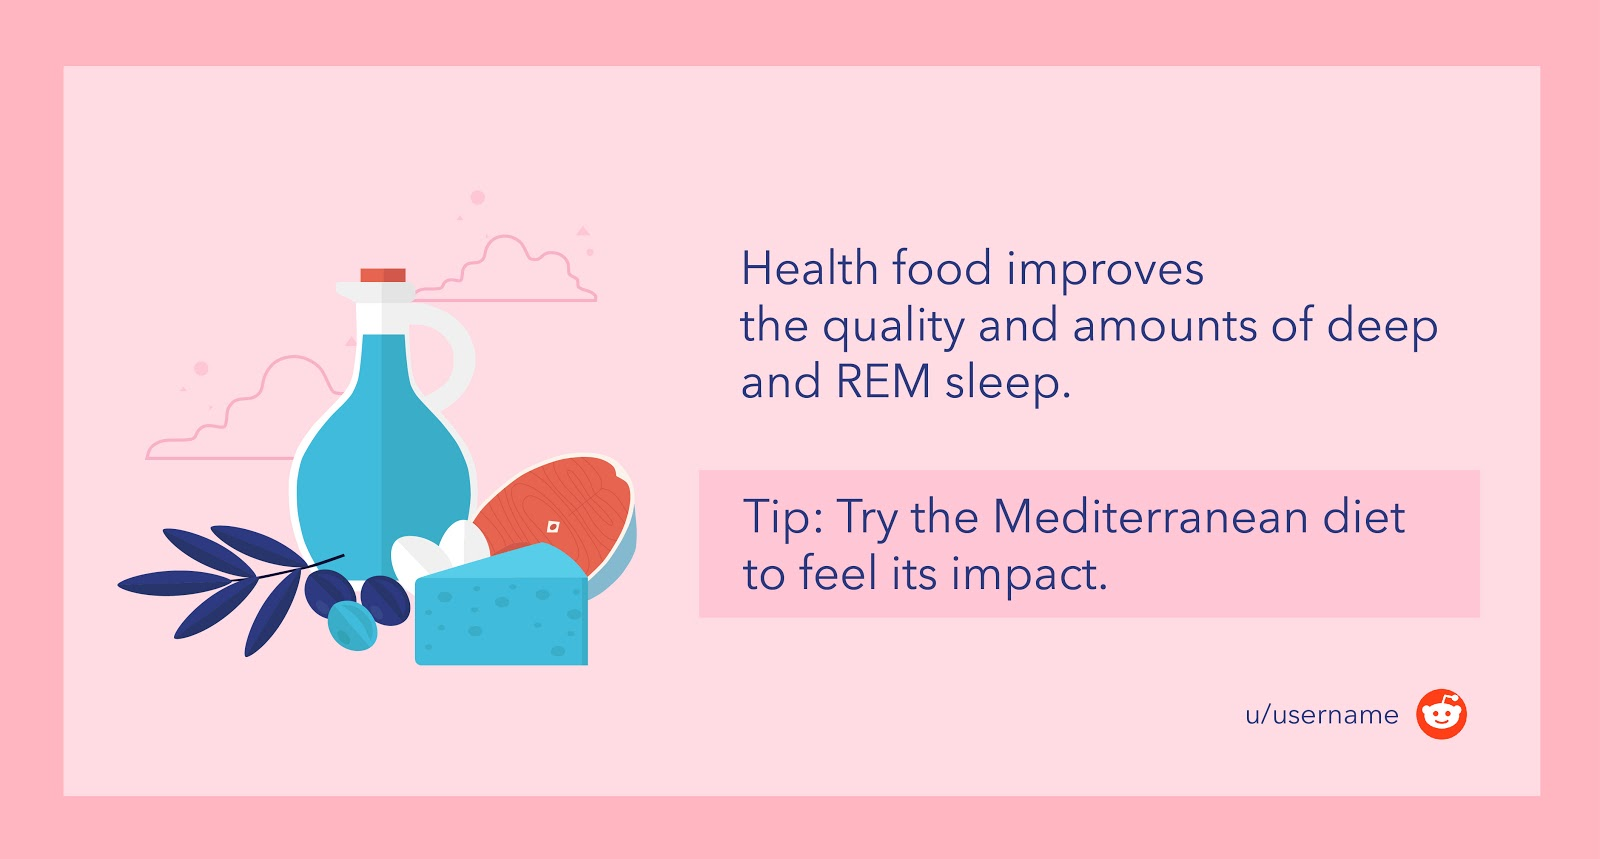 Try the Mediterranean diet to feel its impact